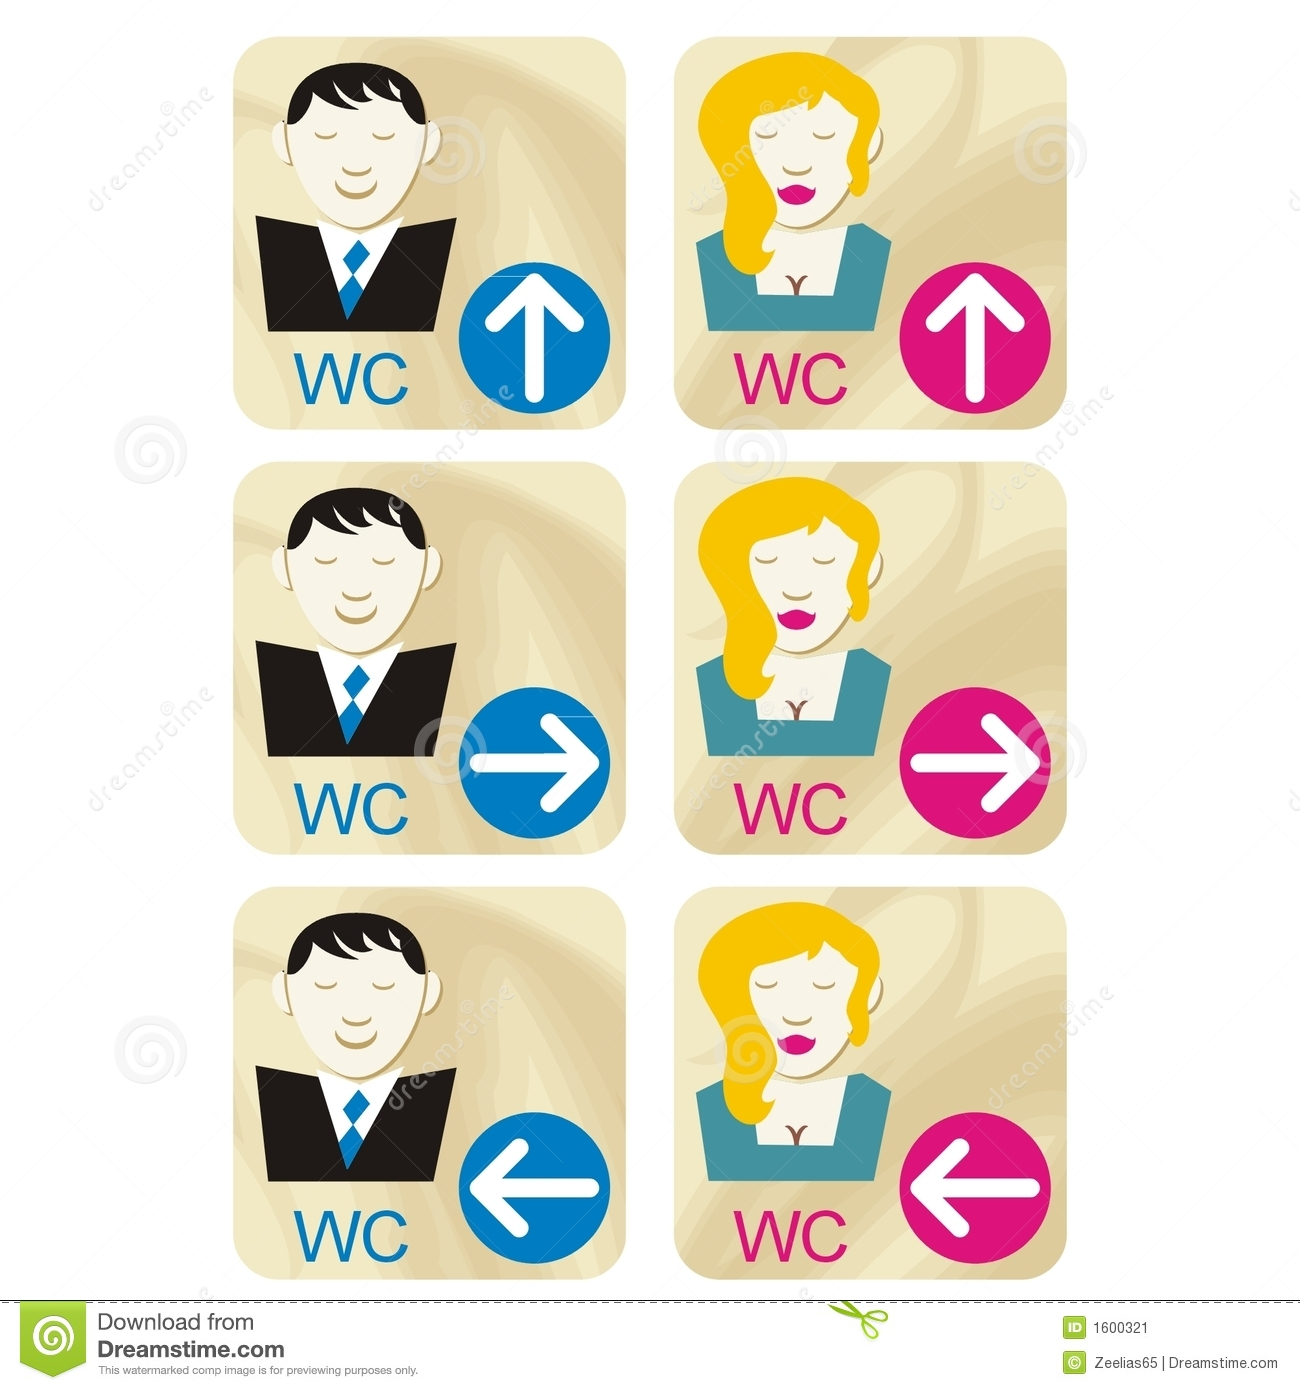 Women and men bathroom signs - Wc Signs Stock Image Image 1600321